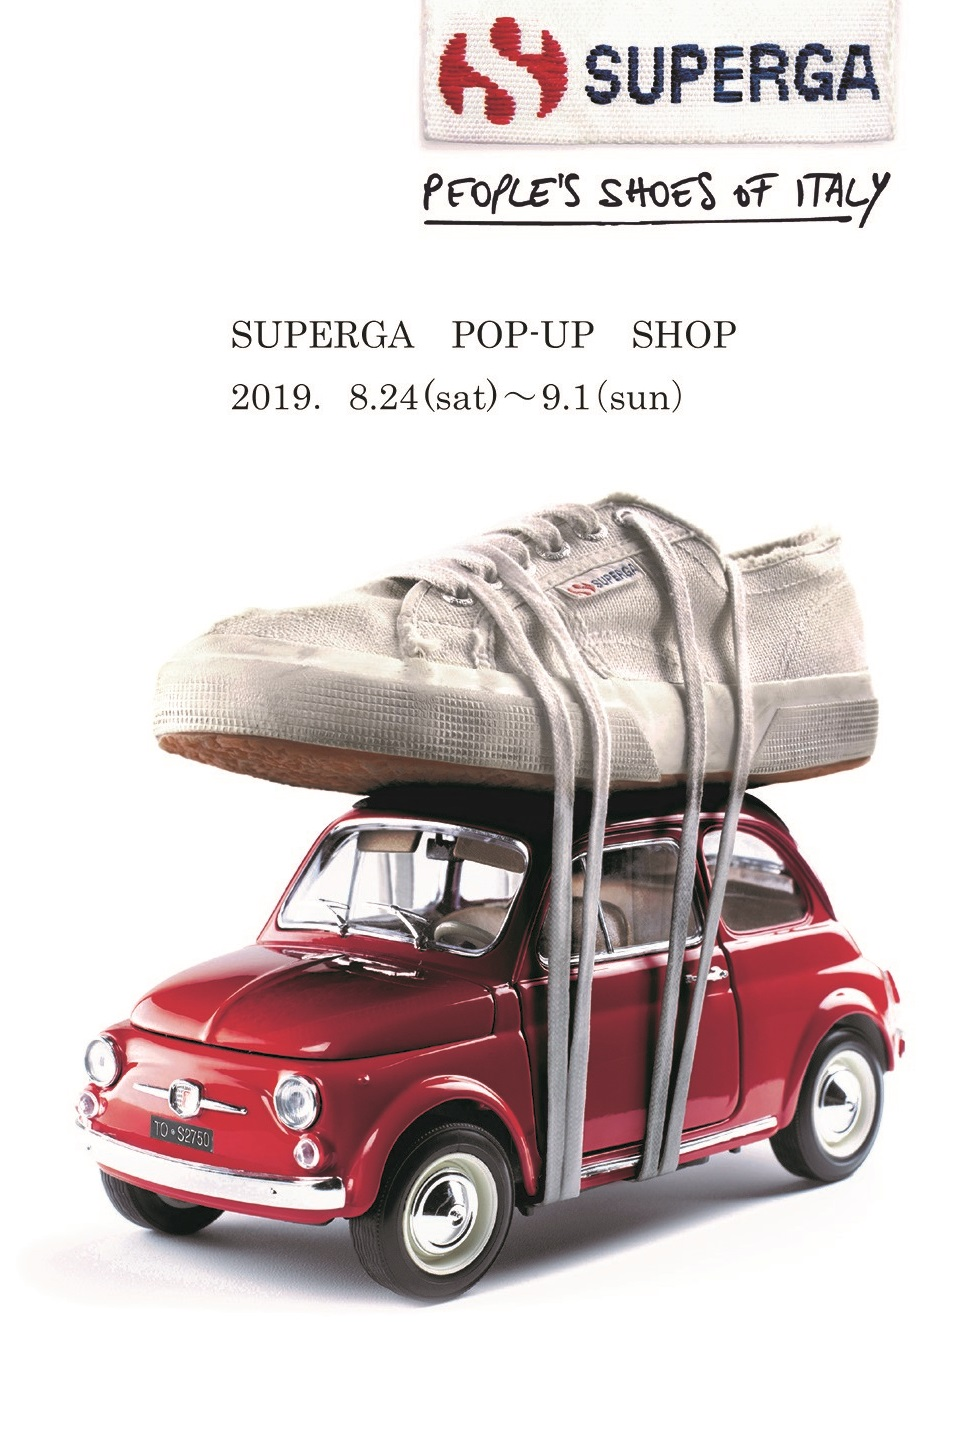 SUPERGA POP-UP SHOP